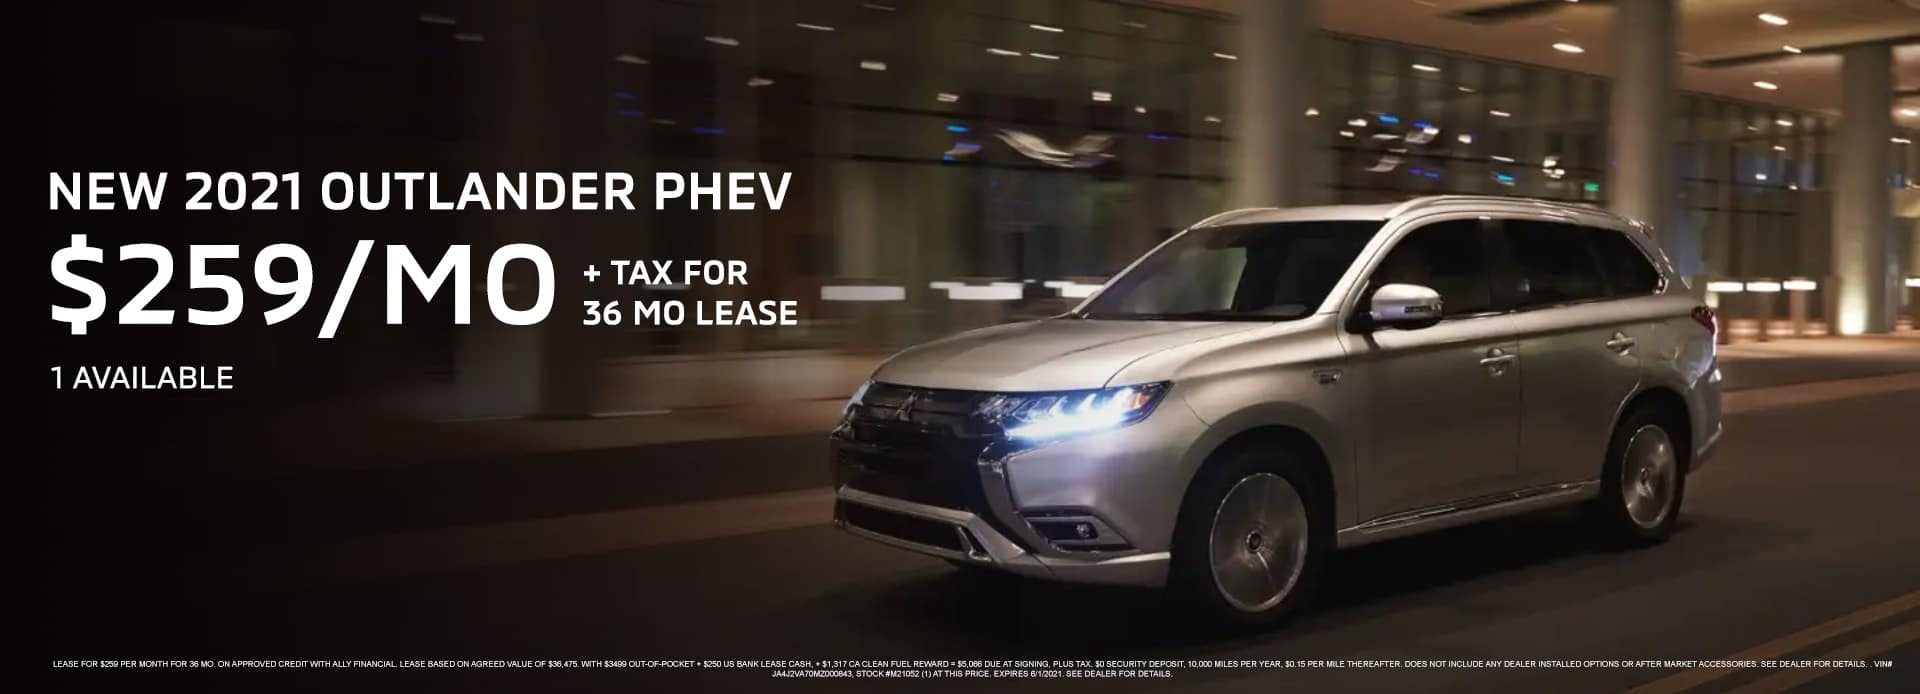 New 2021 OUTLANDER PHEV $259 per mo. + Tax for 36 mo Lease